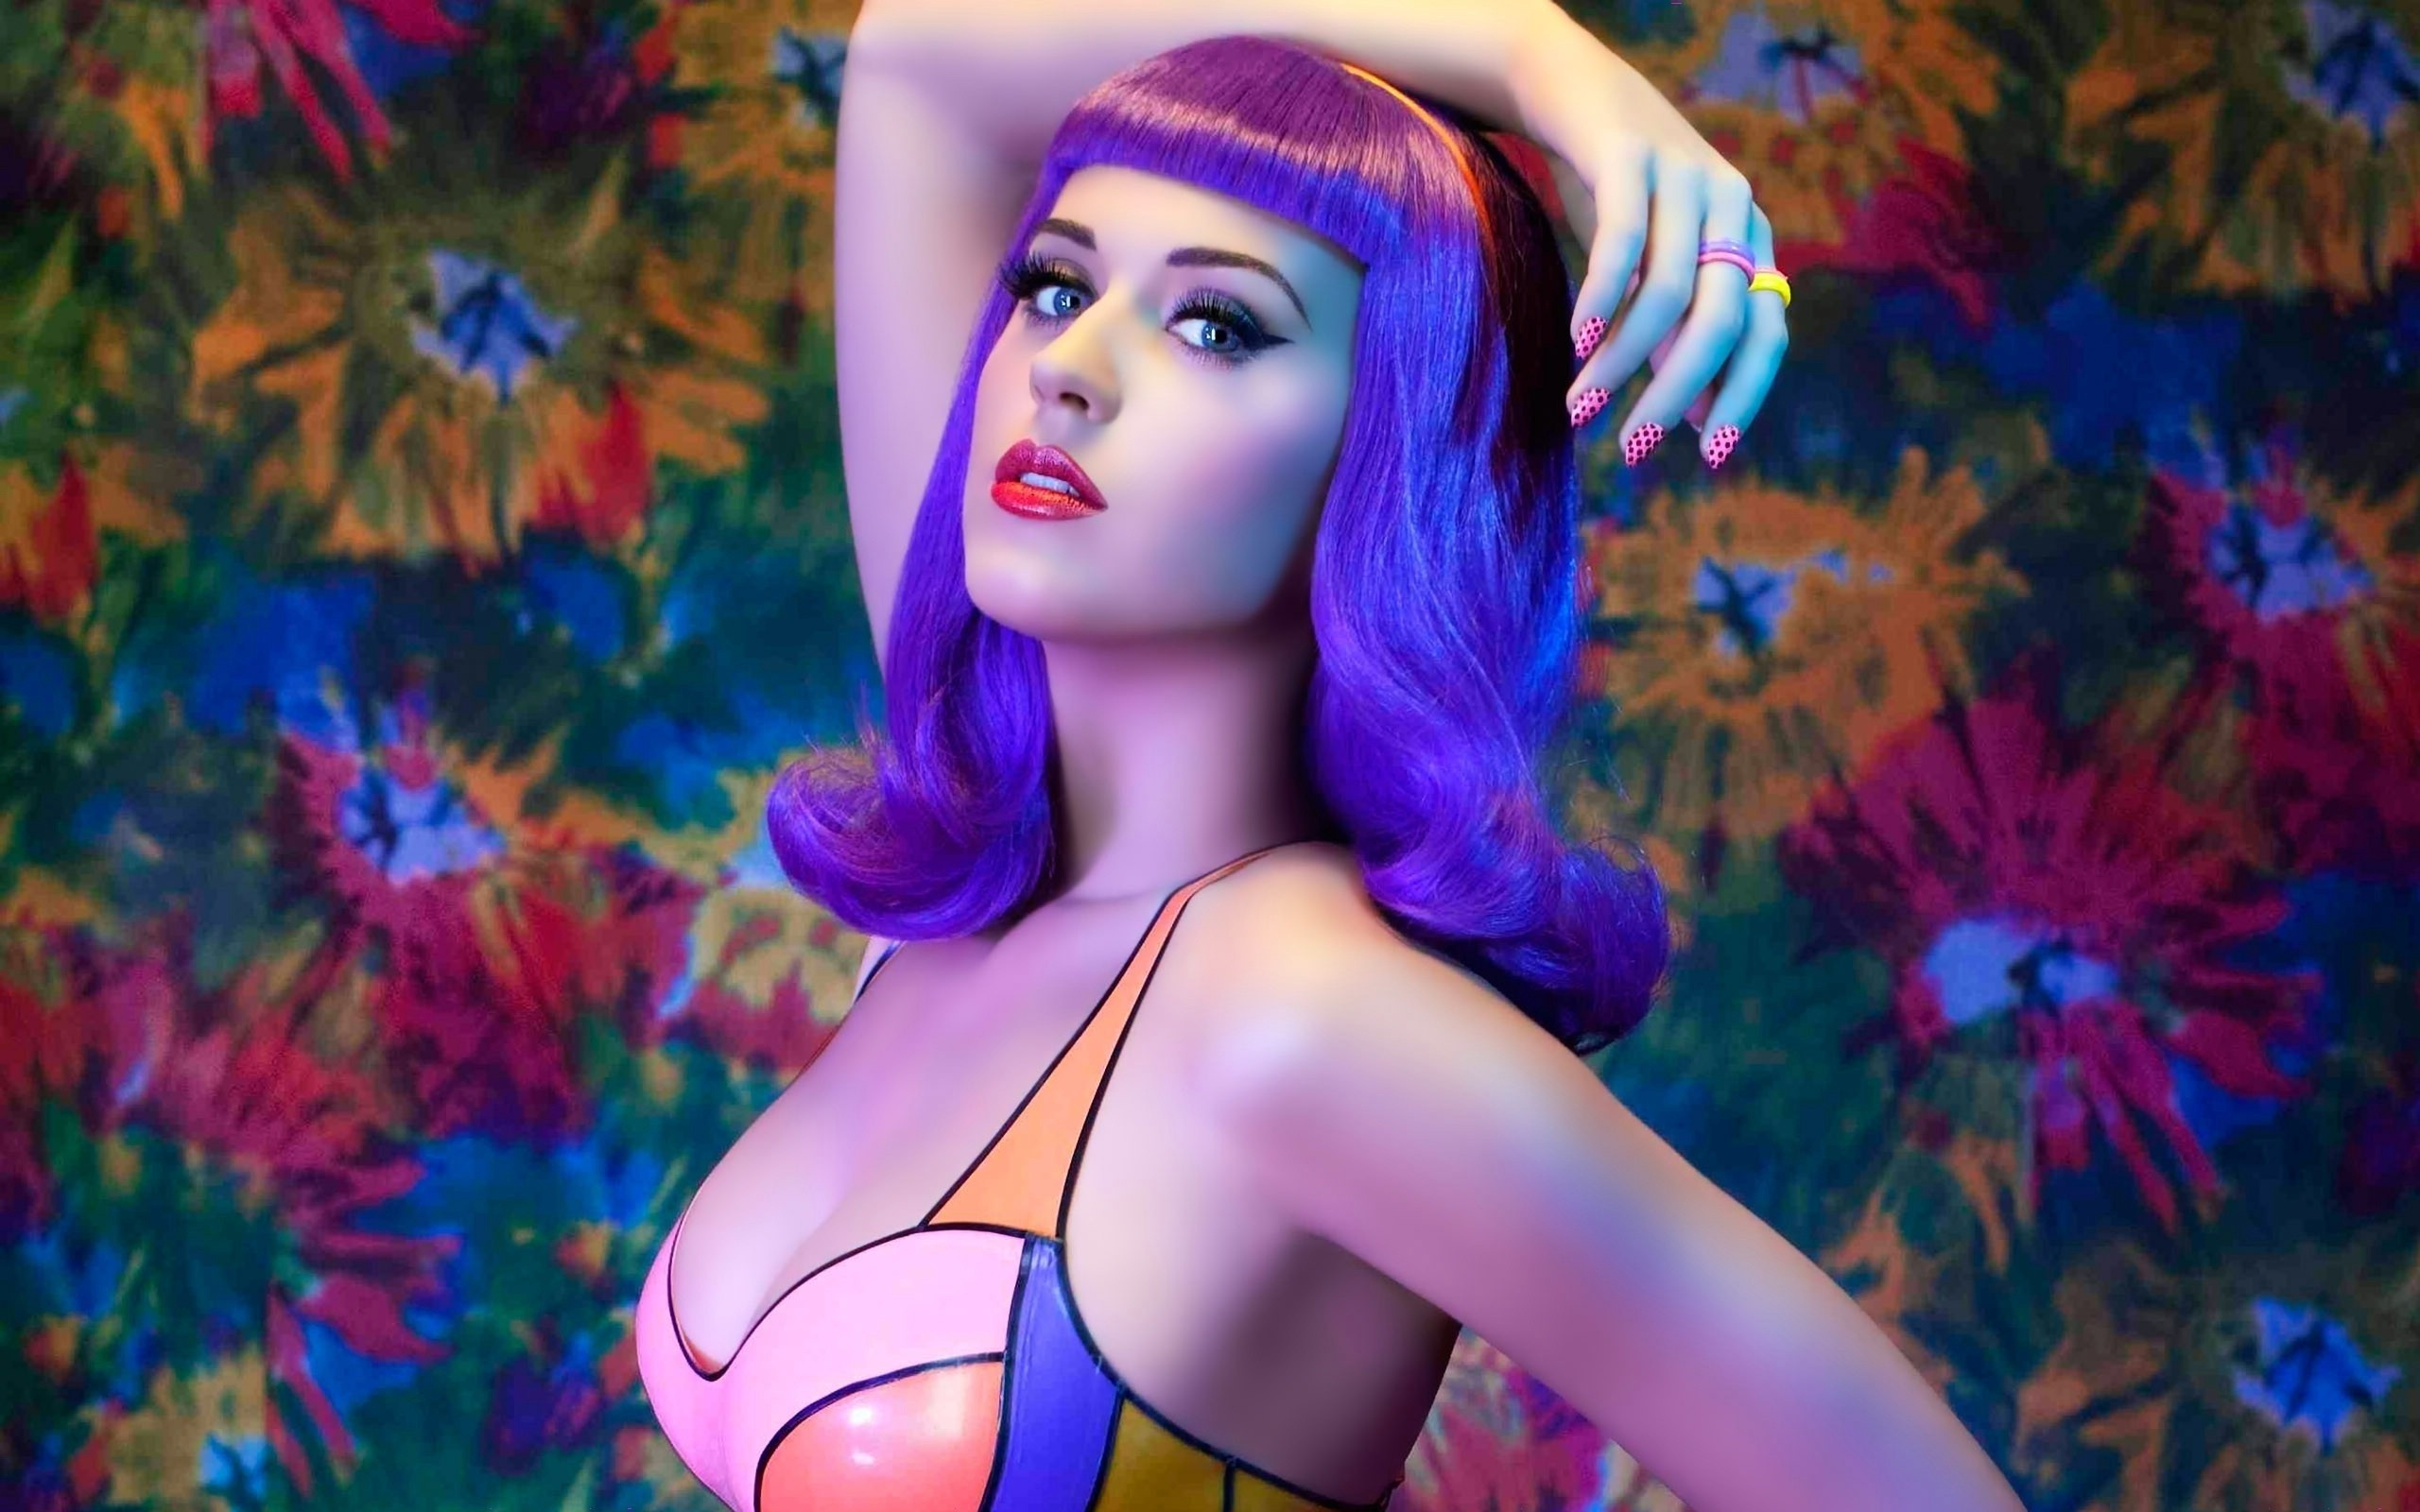 women music Katy Perry blue hair singers